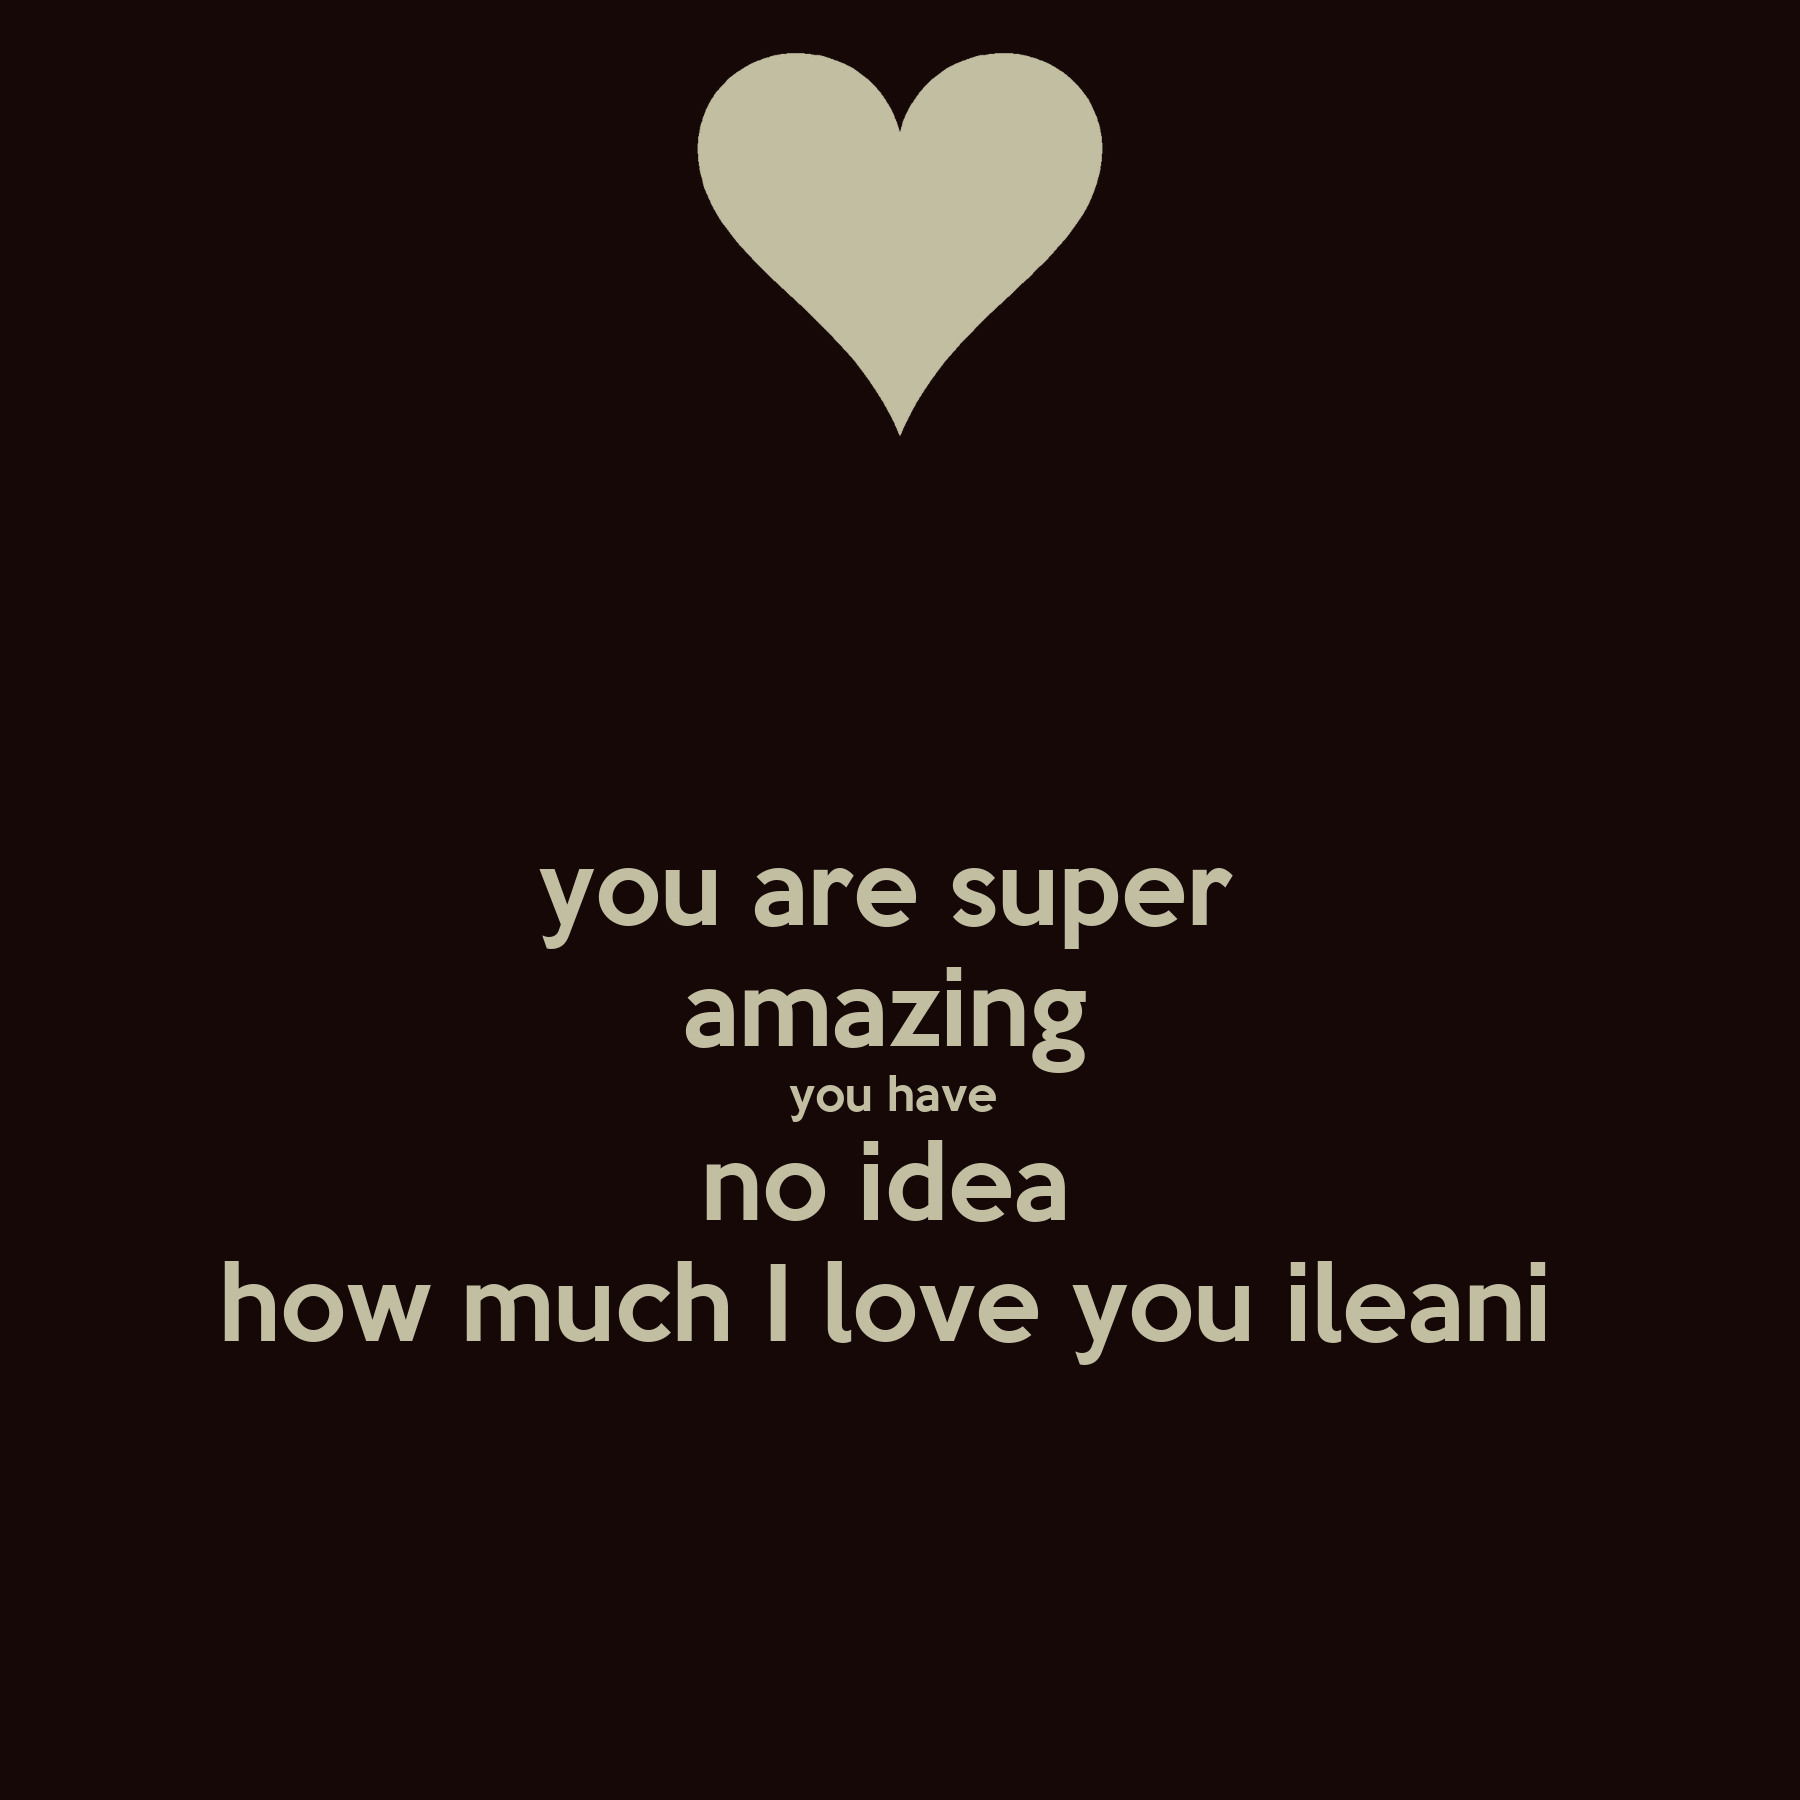 You Are Amazing And I Love You: You Are Super Amazing You Have No Idea How Much I Love You